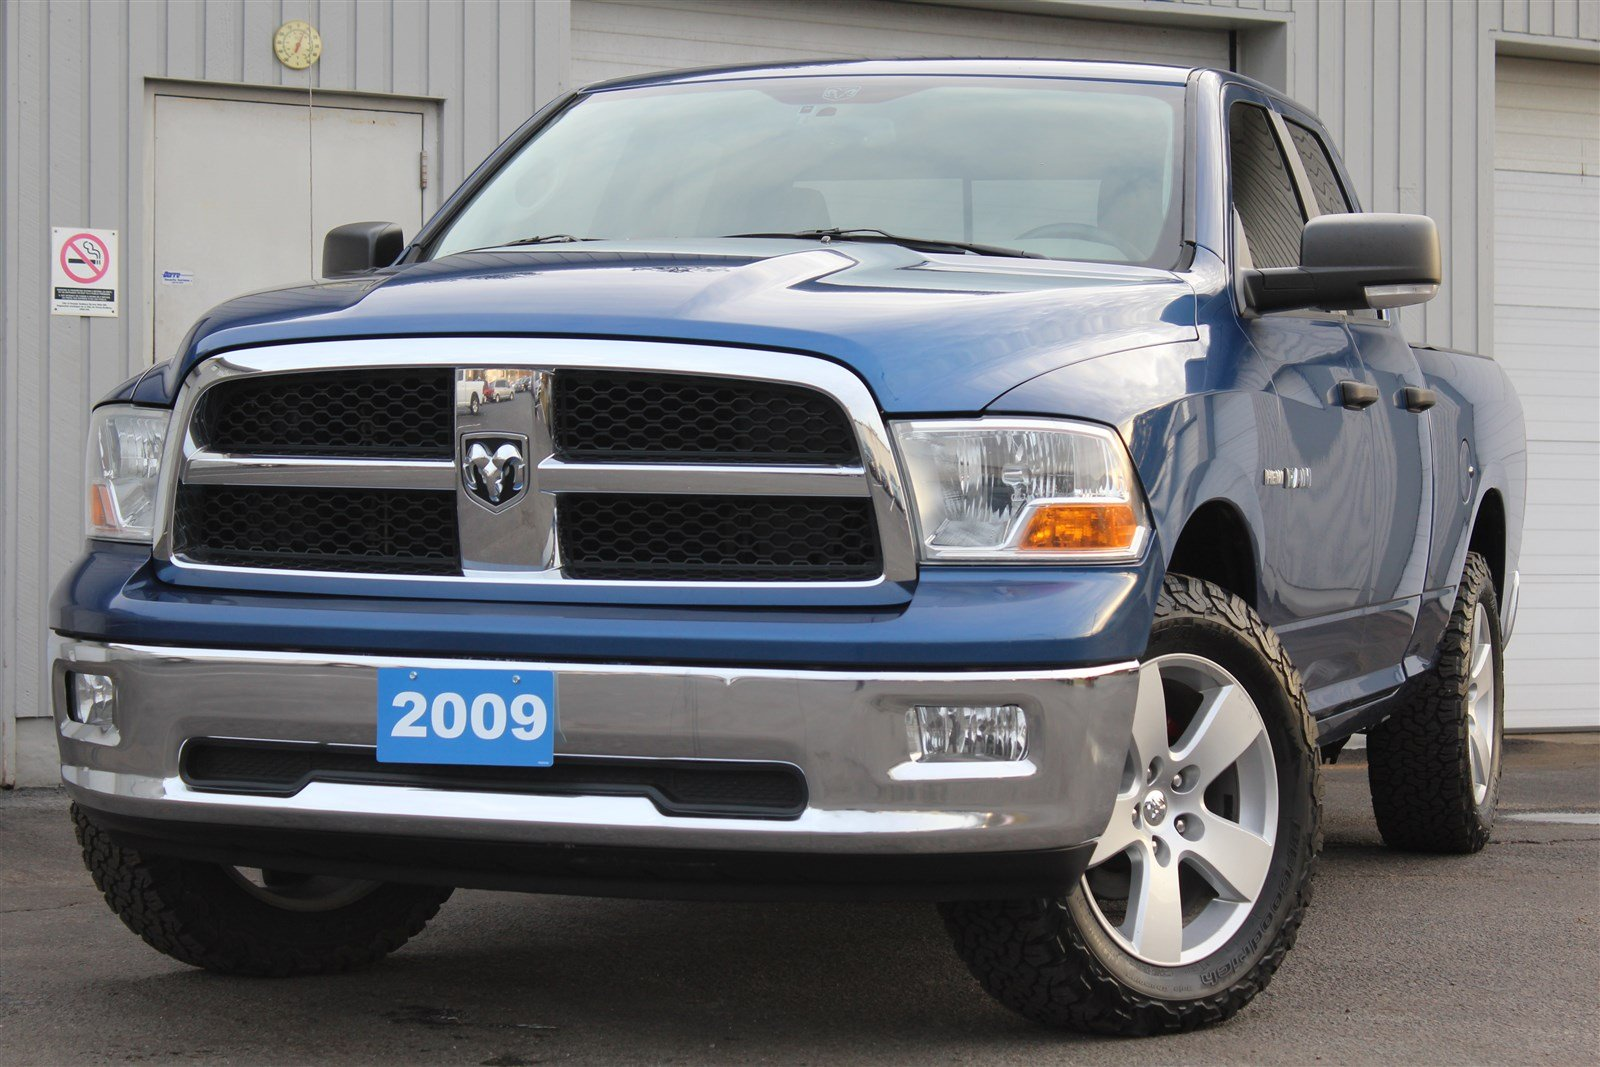 pre owned 2009 dodge ram 1500 slt quad cab one owner 5 7l. Black Bedroom Furniture Sets. Home Design Ideas